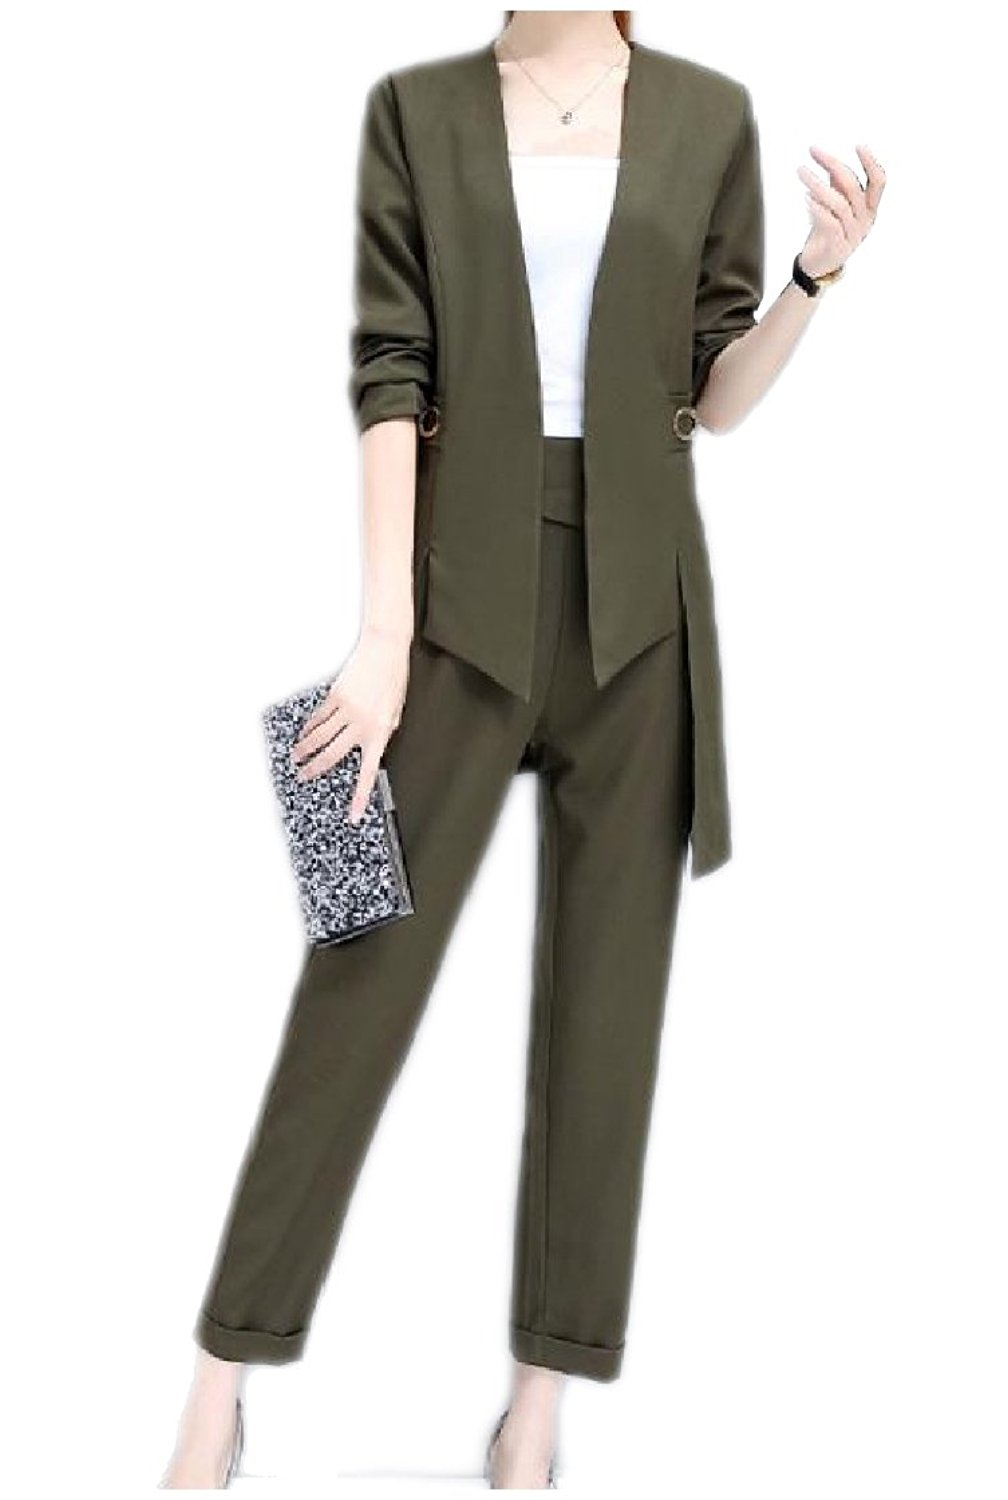 548dd937a Get Quotations · Coolred-Women Draped Tuxedo Solid Colored Jacket and Pant  Suit Set